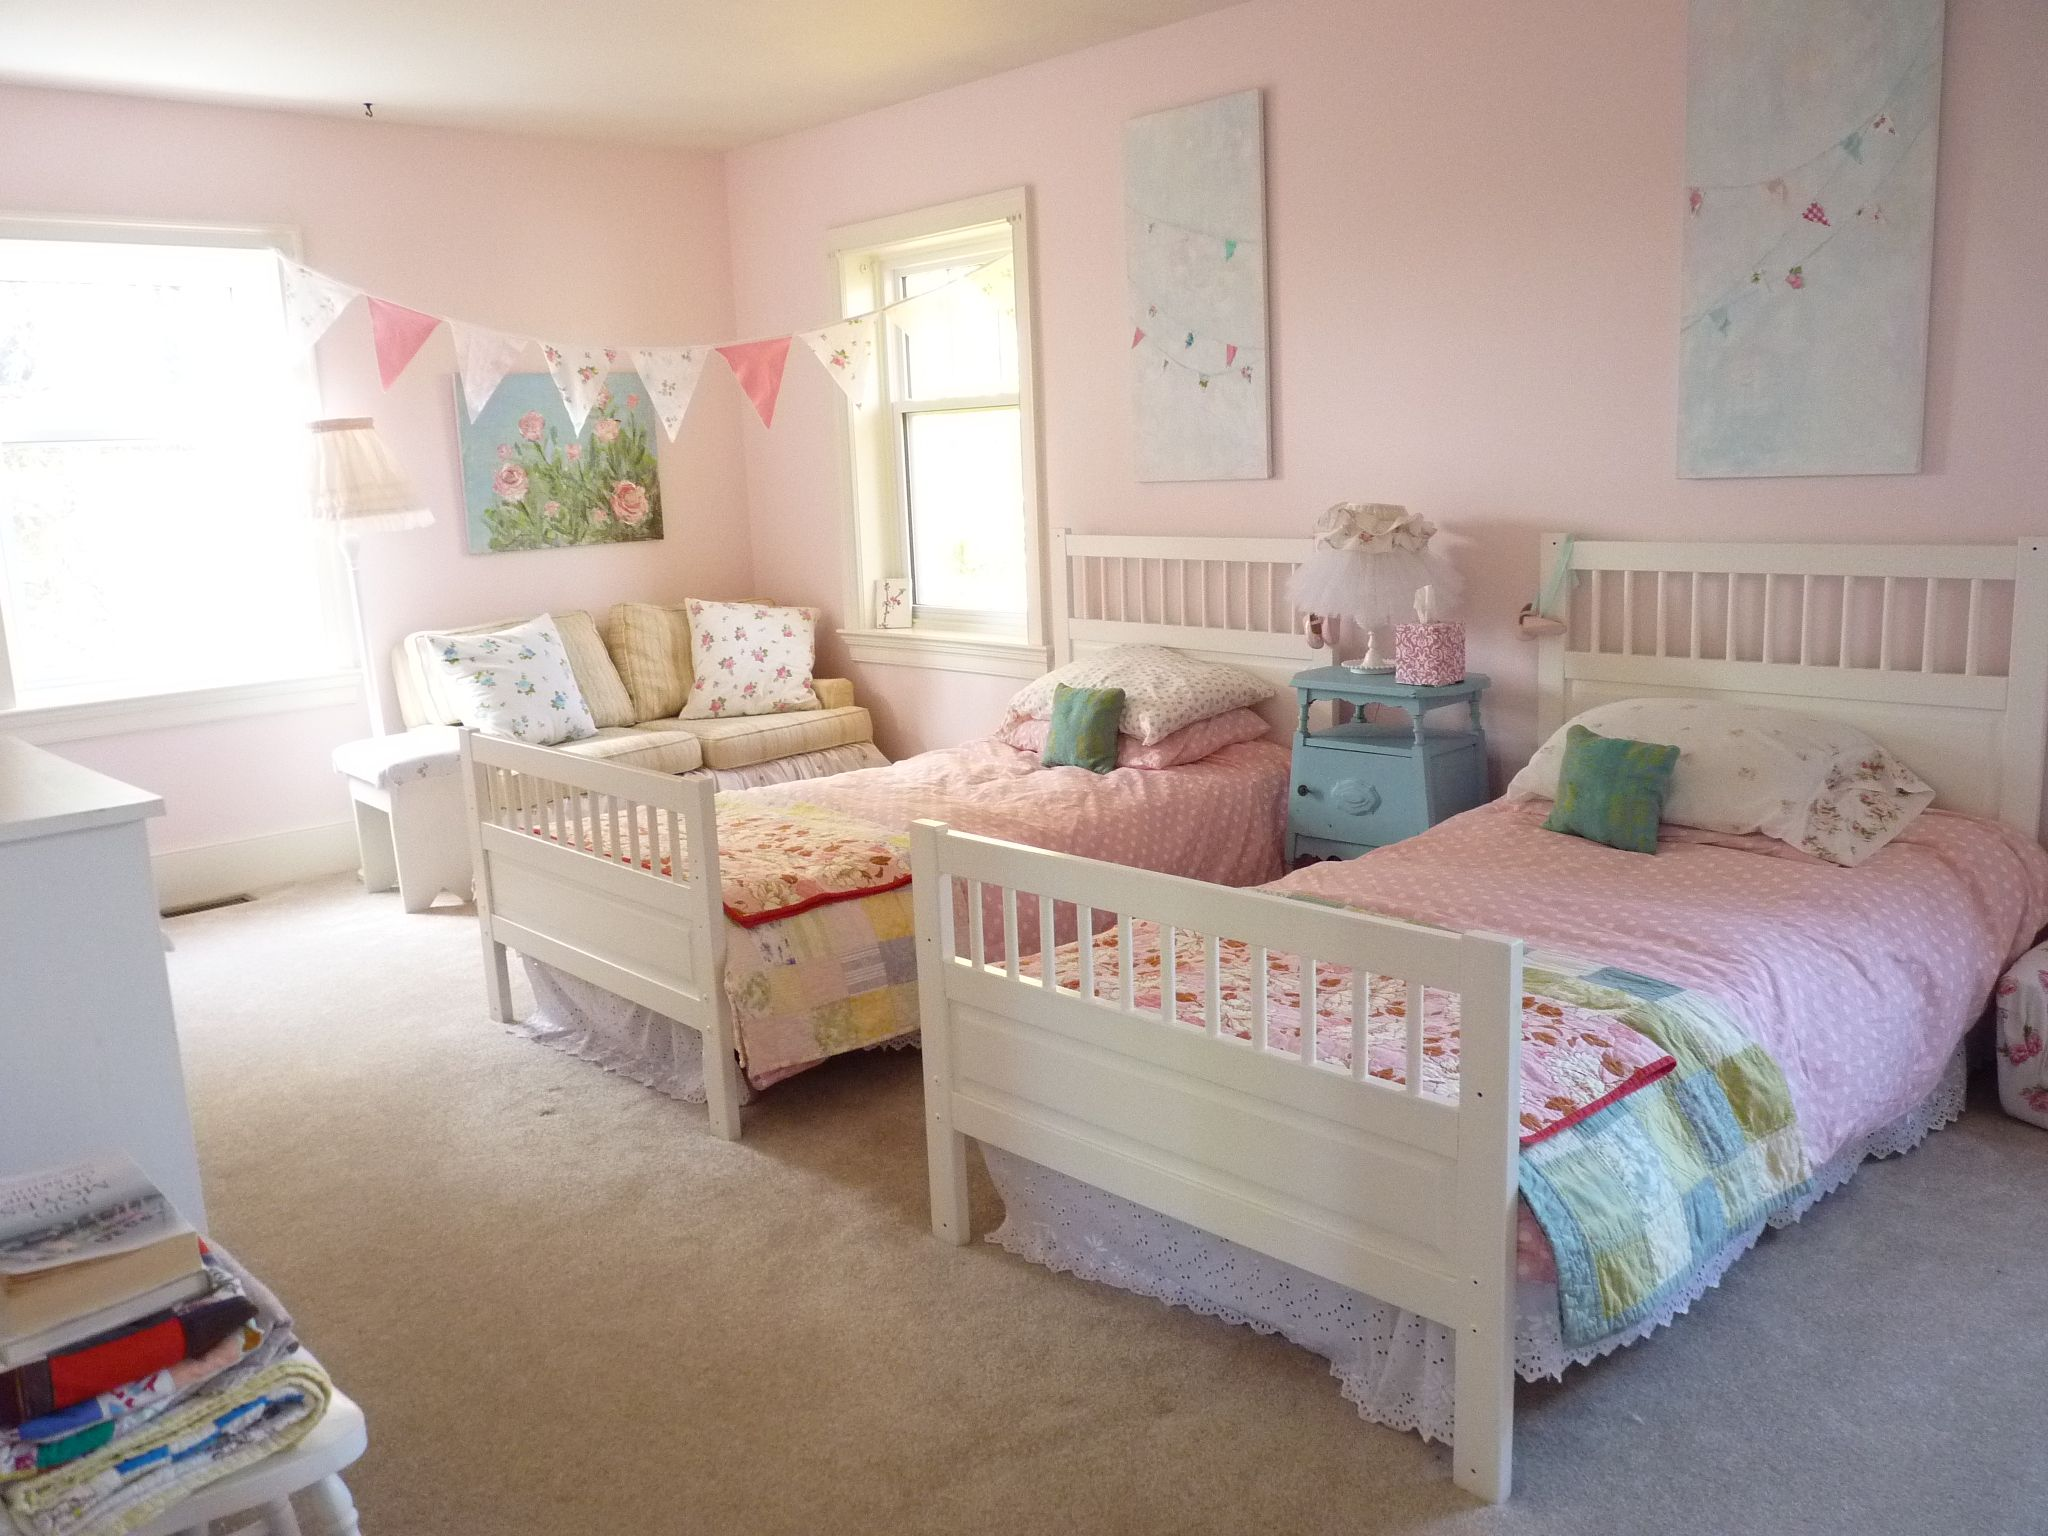 a shabby chic bedroom for twin girls | ava's shabby chic bedroom